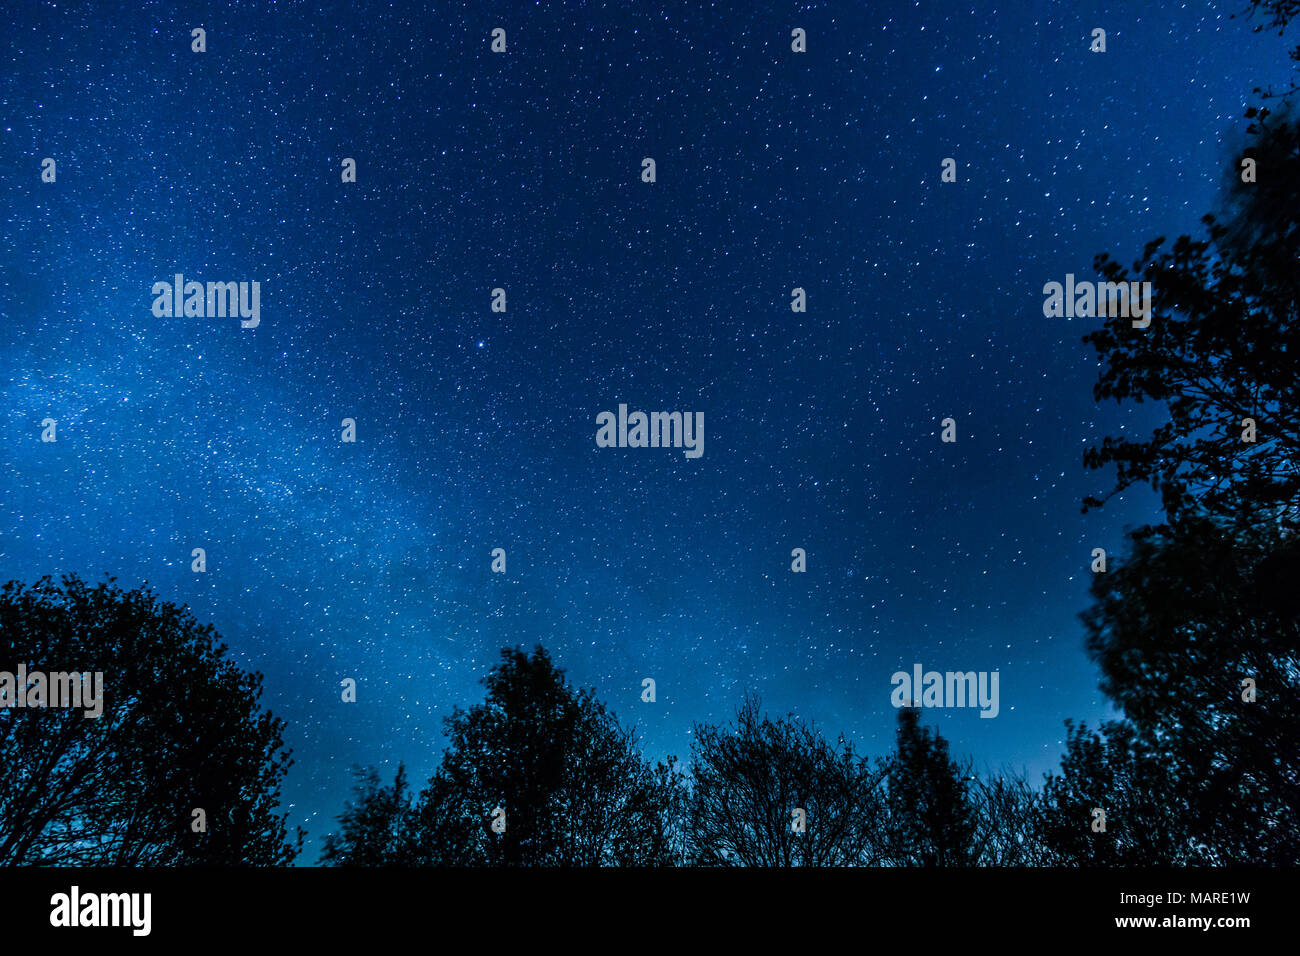 trees milkyway stars space astro - Stock Image